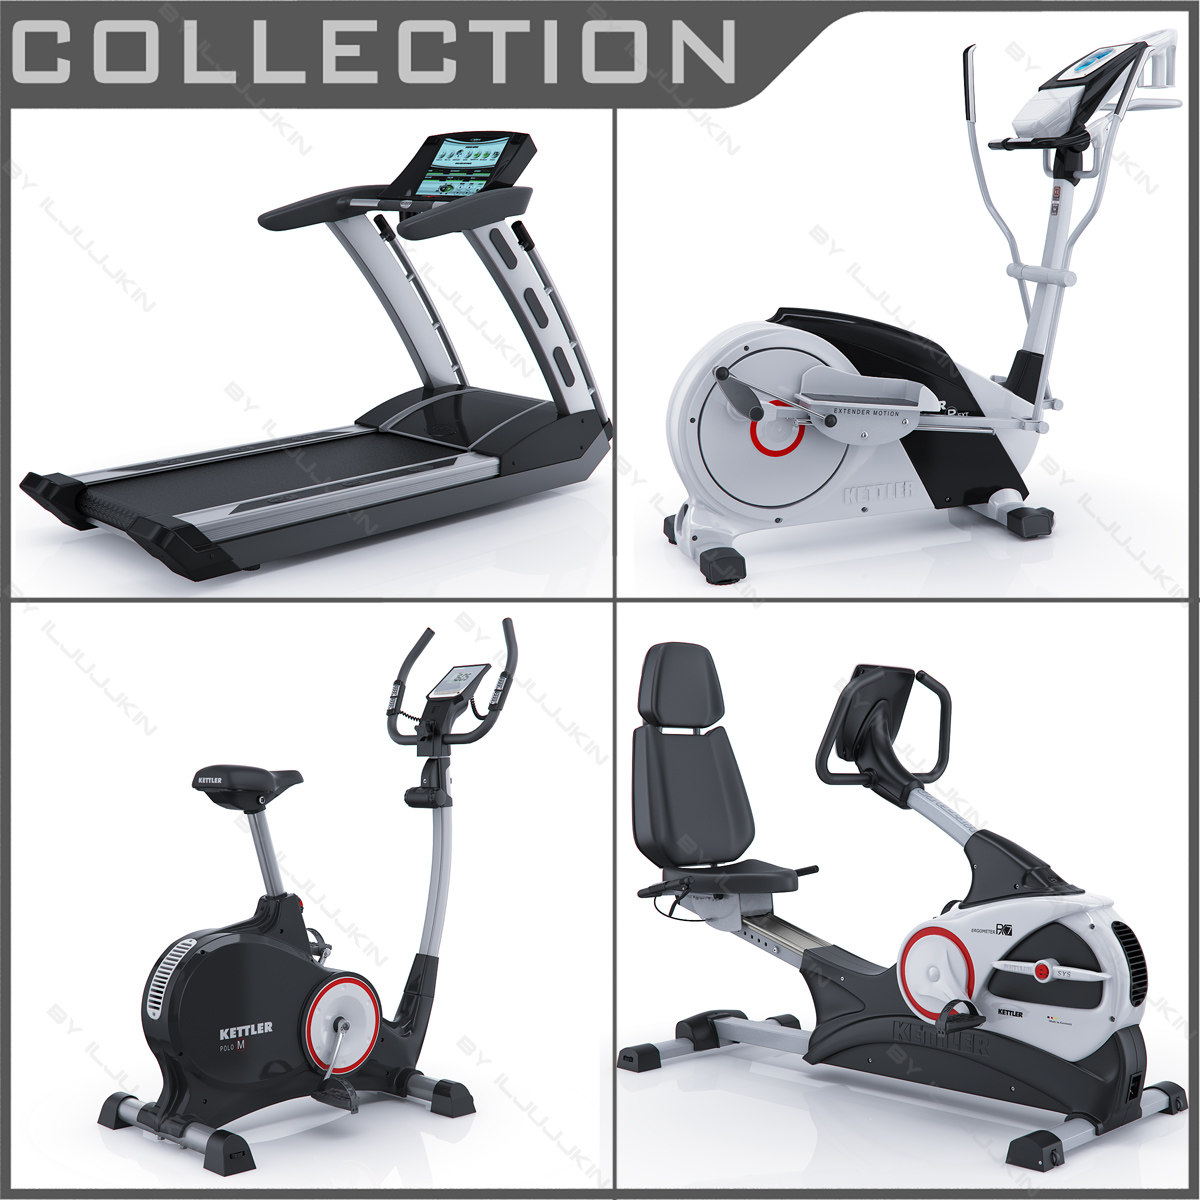 Collection_cardio.jpg